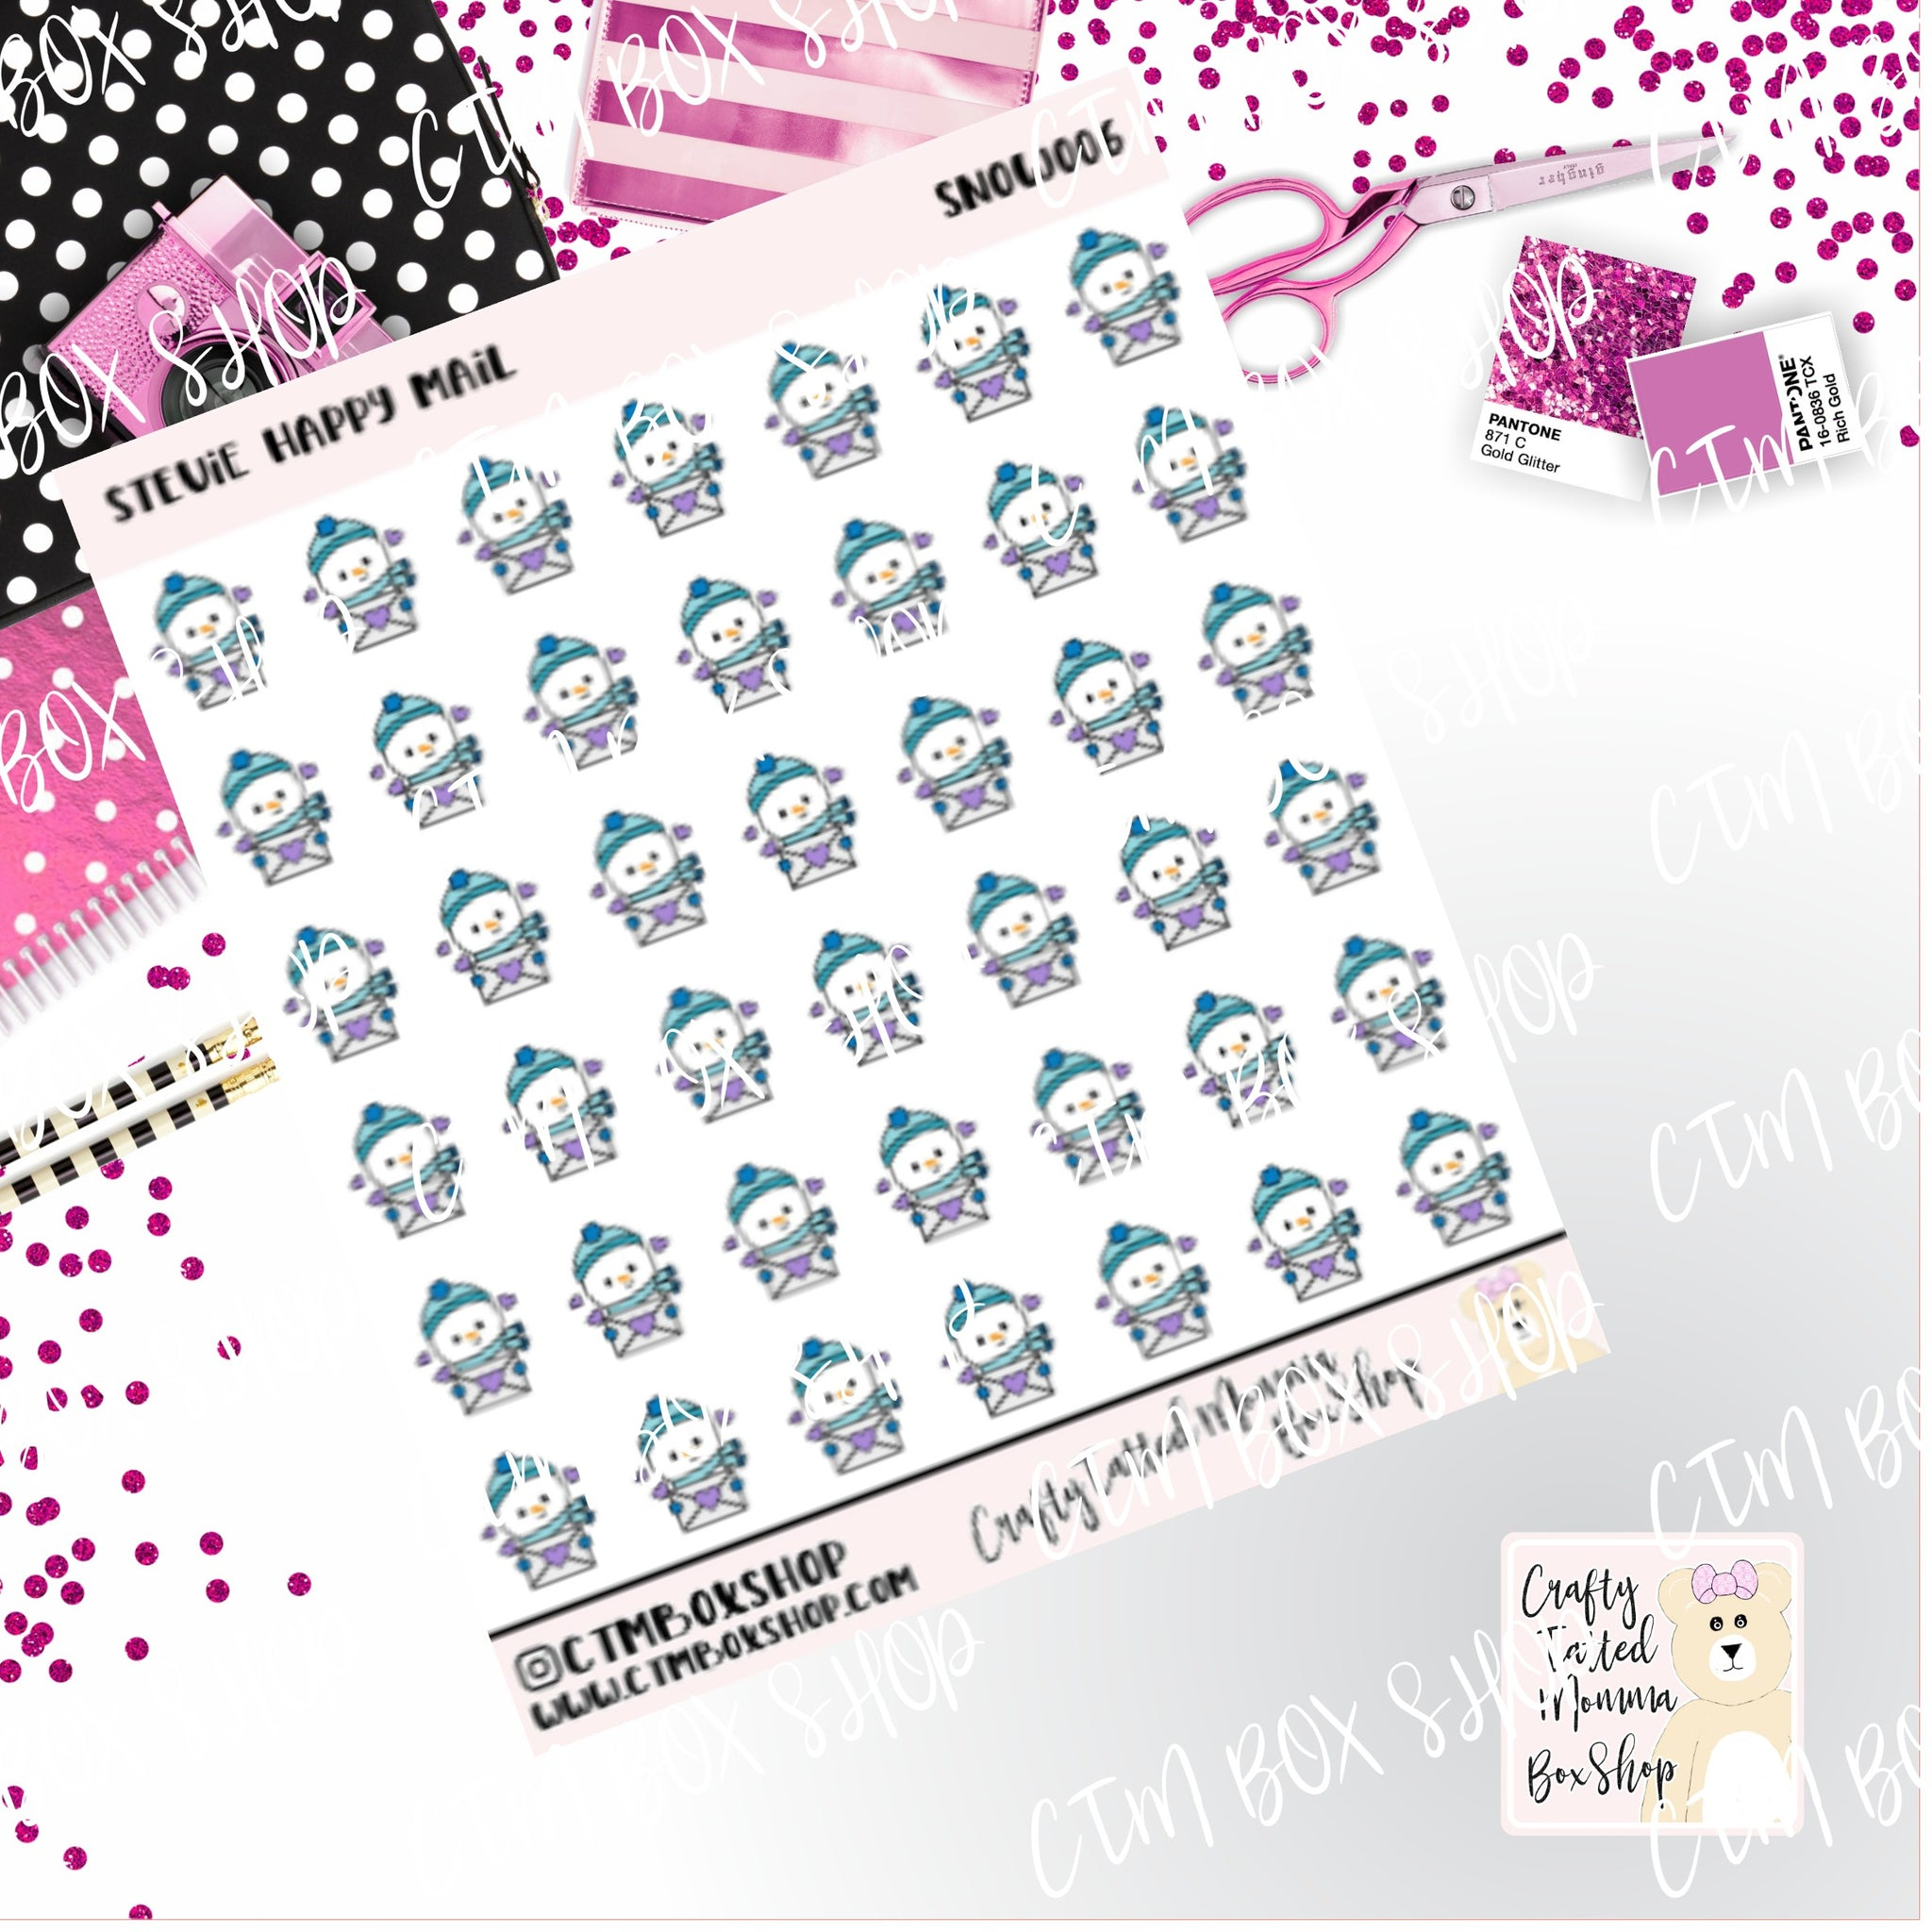 Stevie Happy Mail, Stevie Snowman Stickers   Character Stickers   Planner Stickers   Functional Stickers   Winter Stickers   Deco Stickers